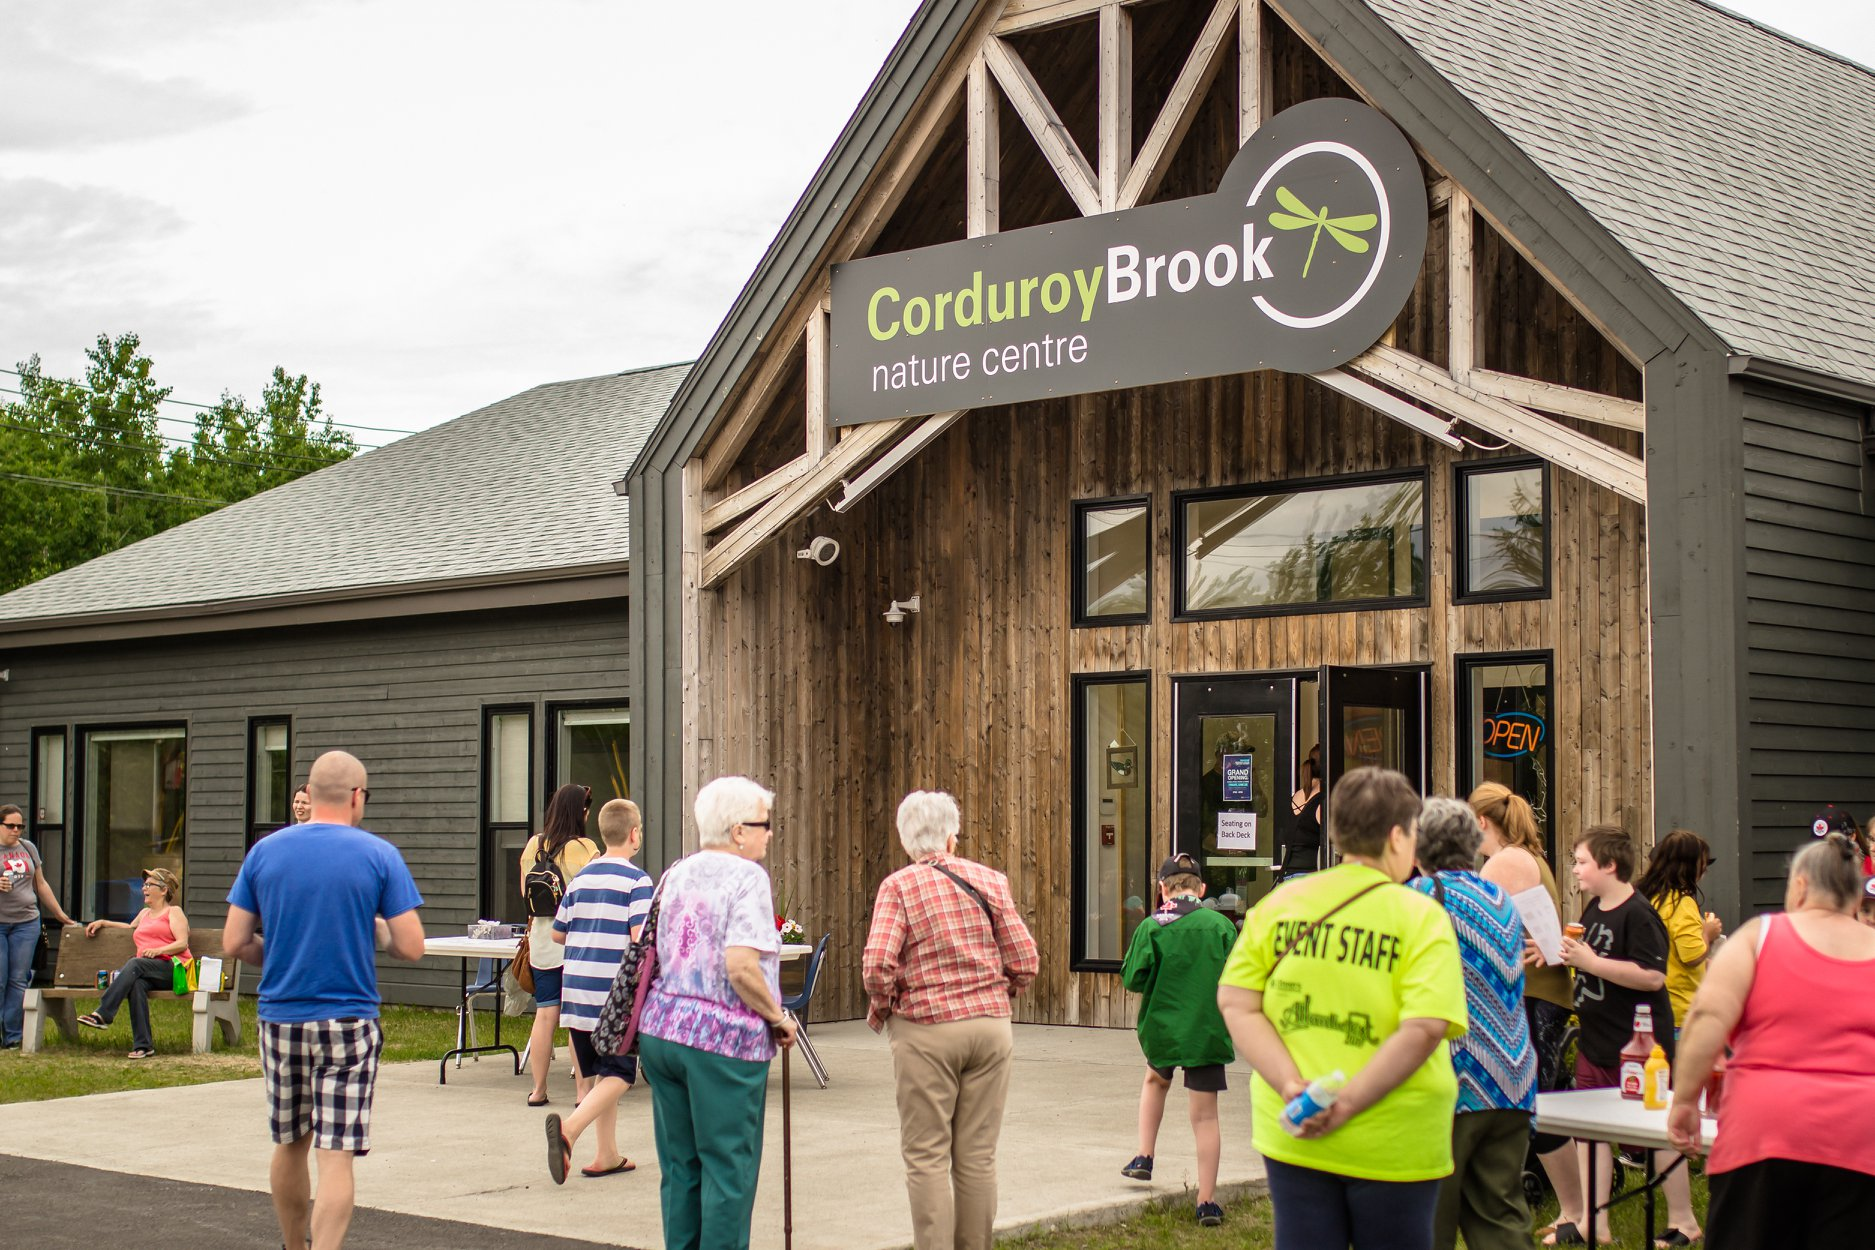 corduroy brook website picture 4